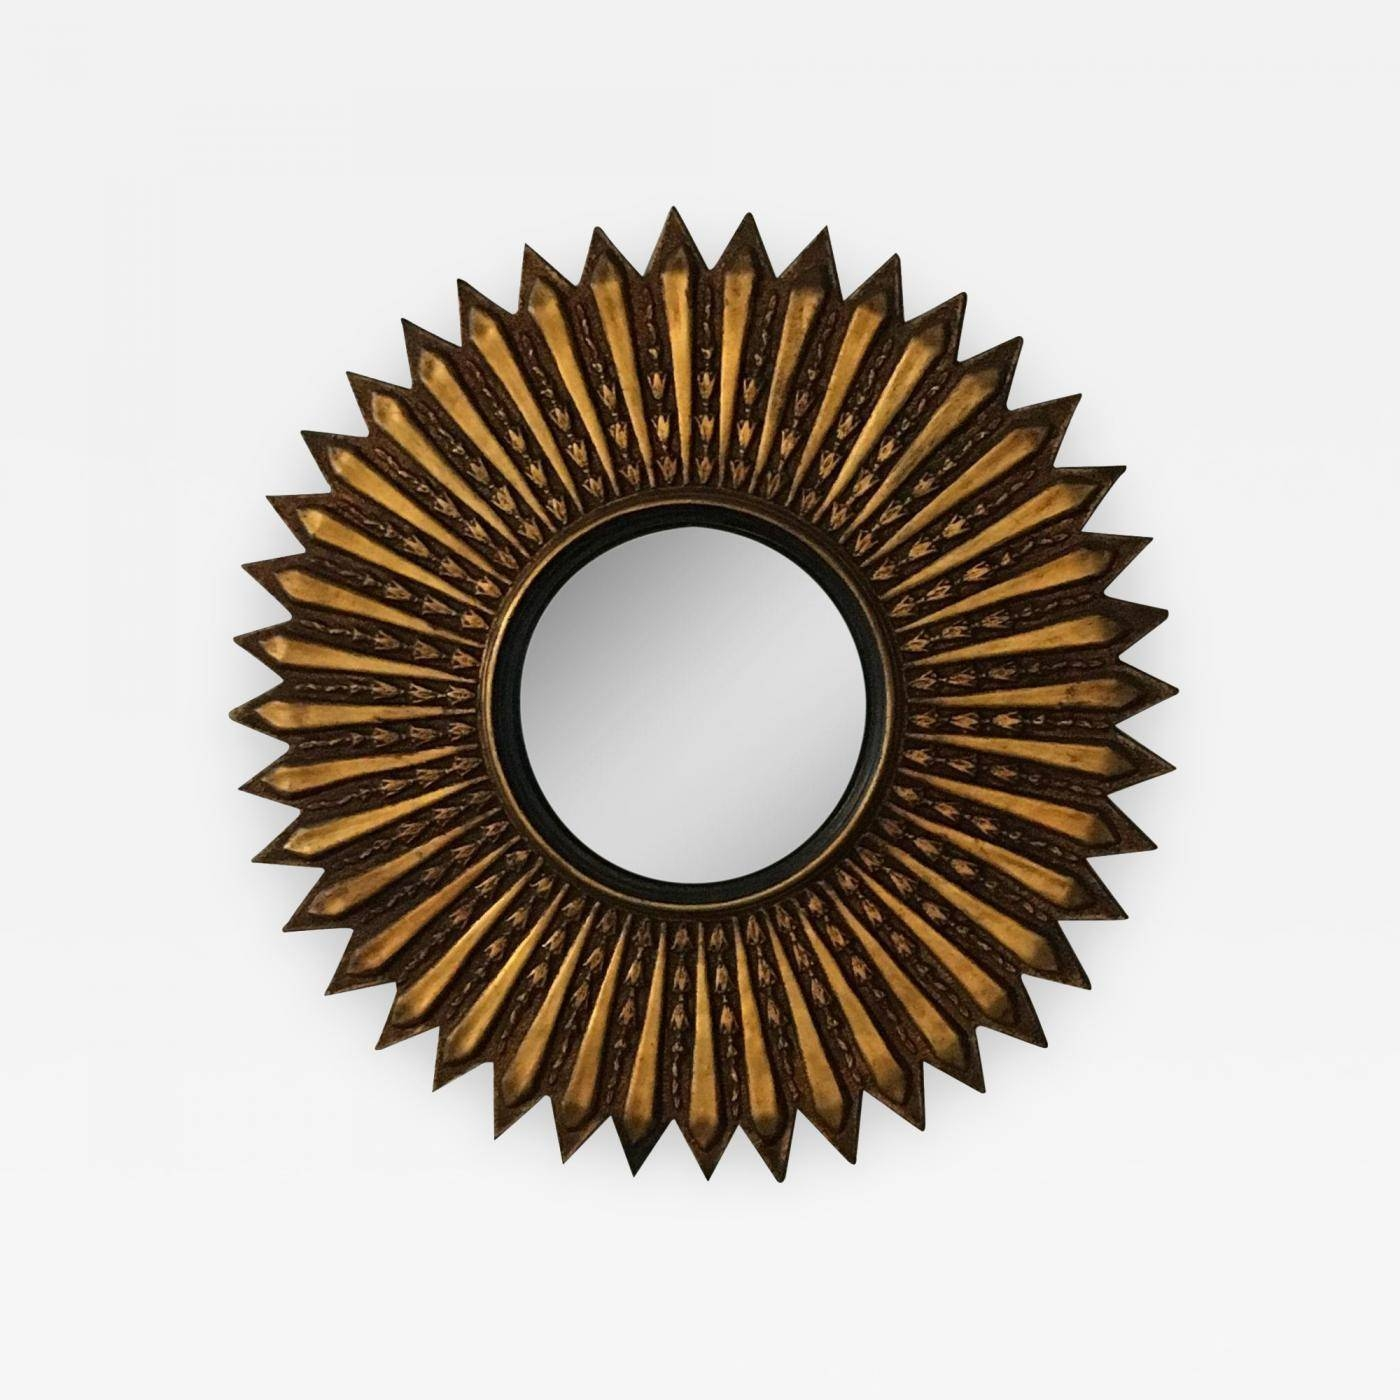 Mid Century Modern Argentinian Gilded Wood Starburst Convex Mirror regarding Starburst Convex Mirrors (Image 8 of 15)